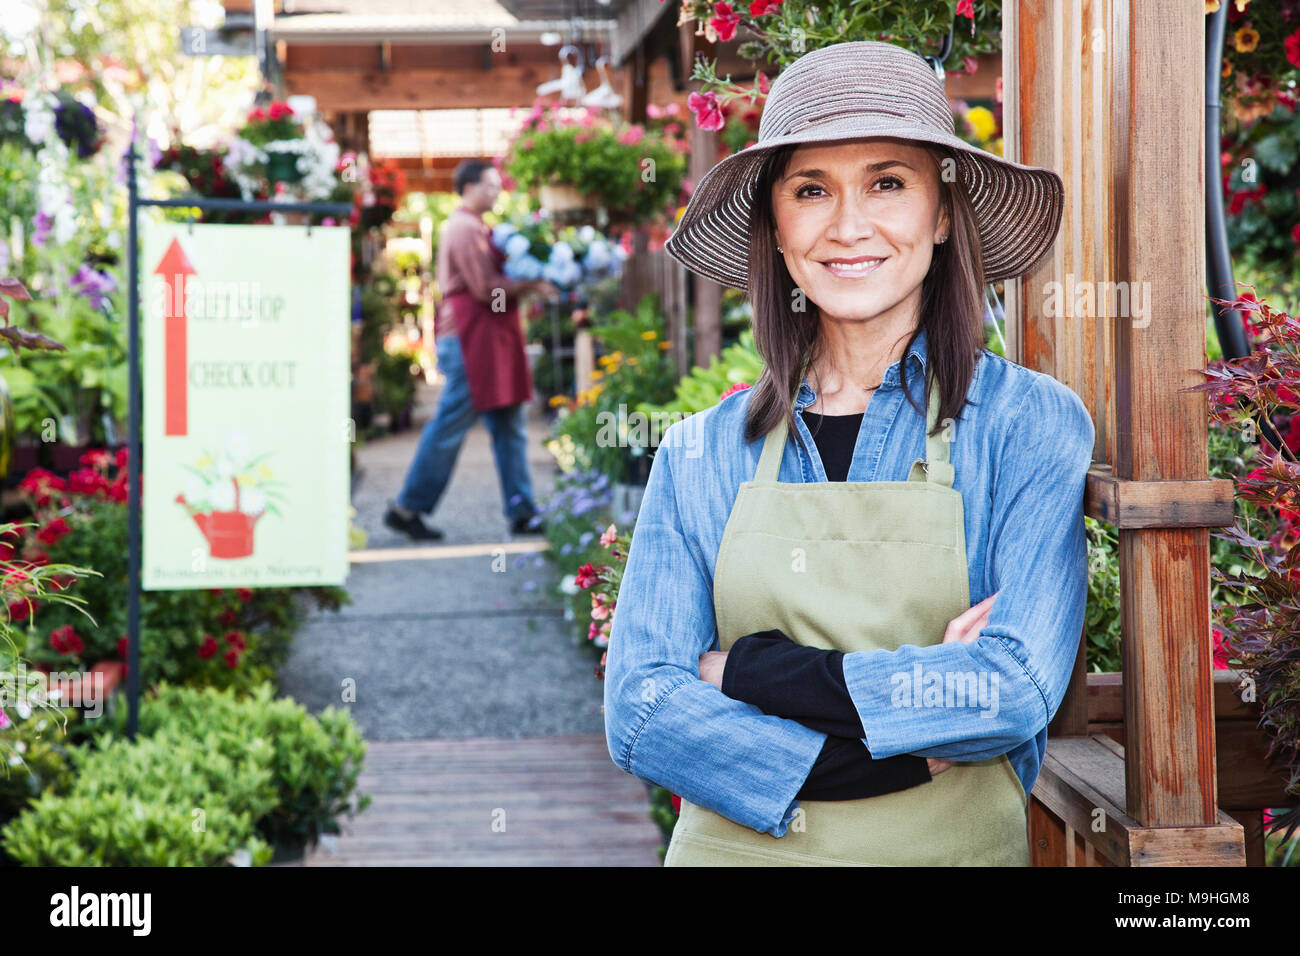 Caucasian woman owner of garden center nursery with a younger employee. - Stock Image